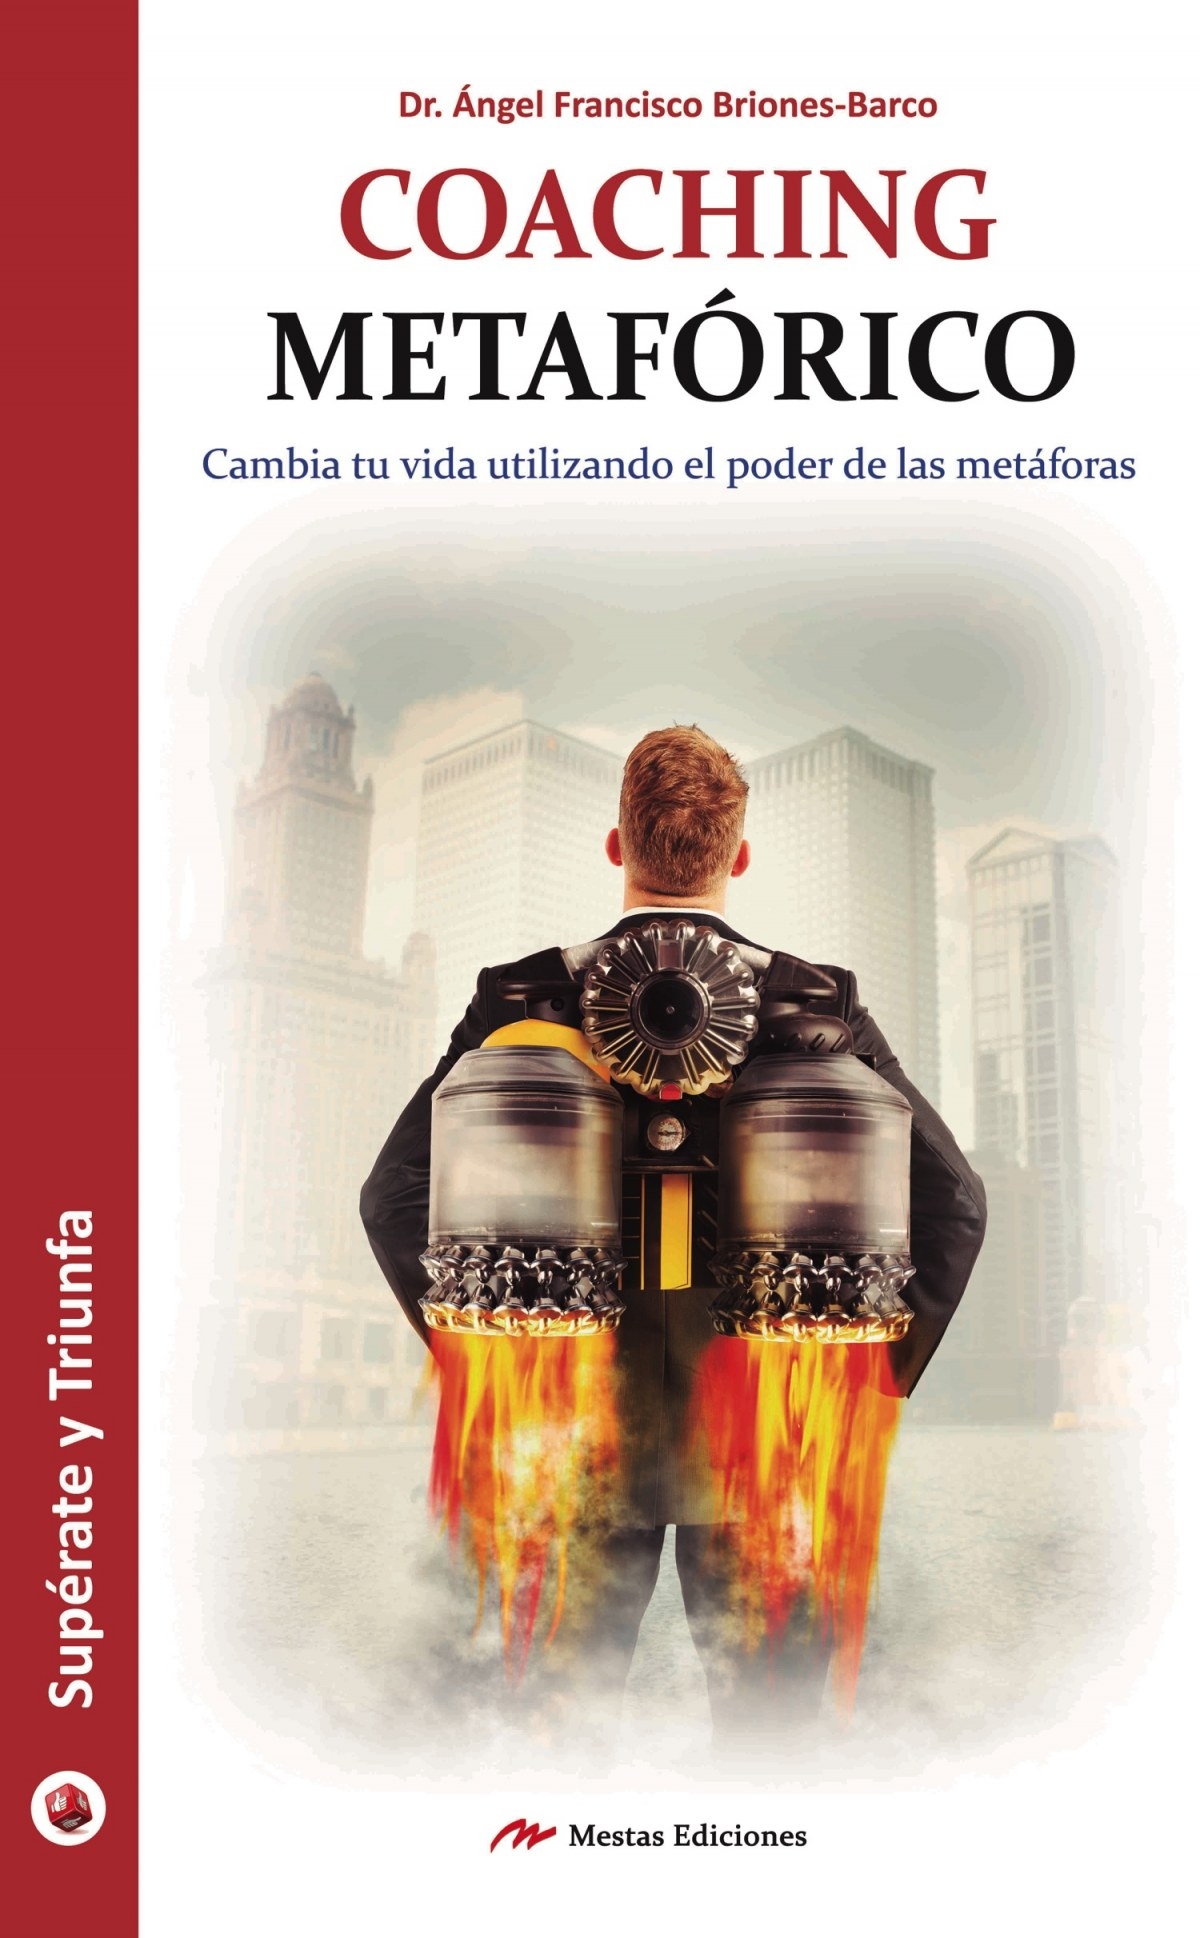 COACHING METAFORICO